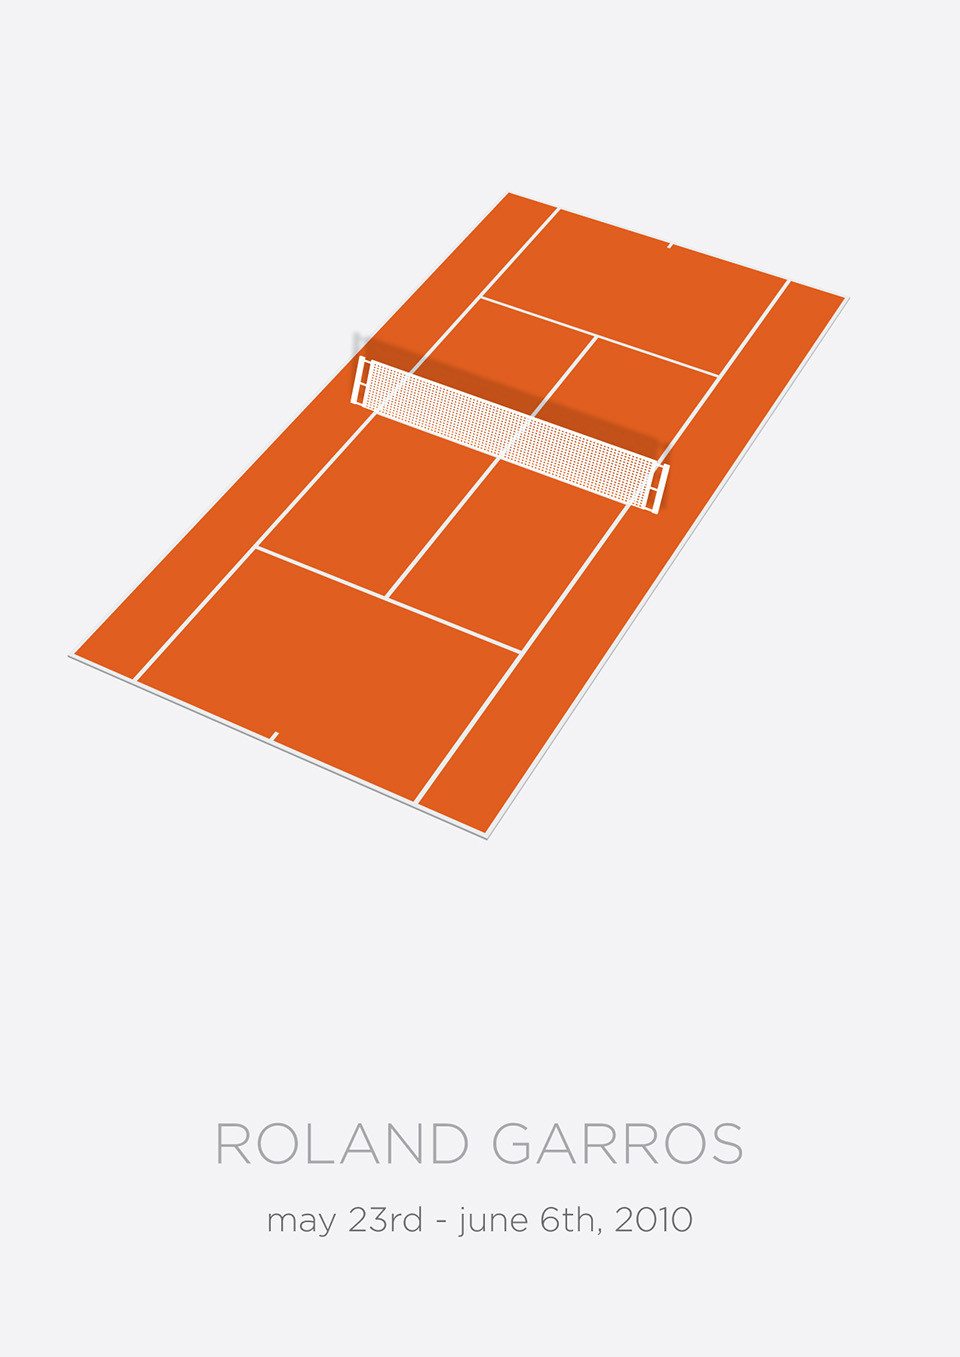 grand slams 2010 - roland garros